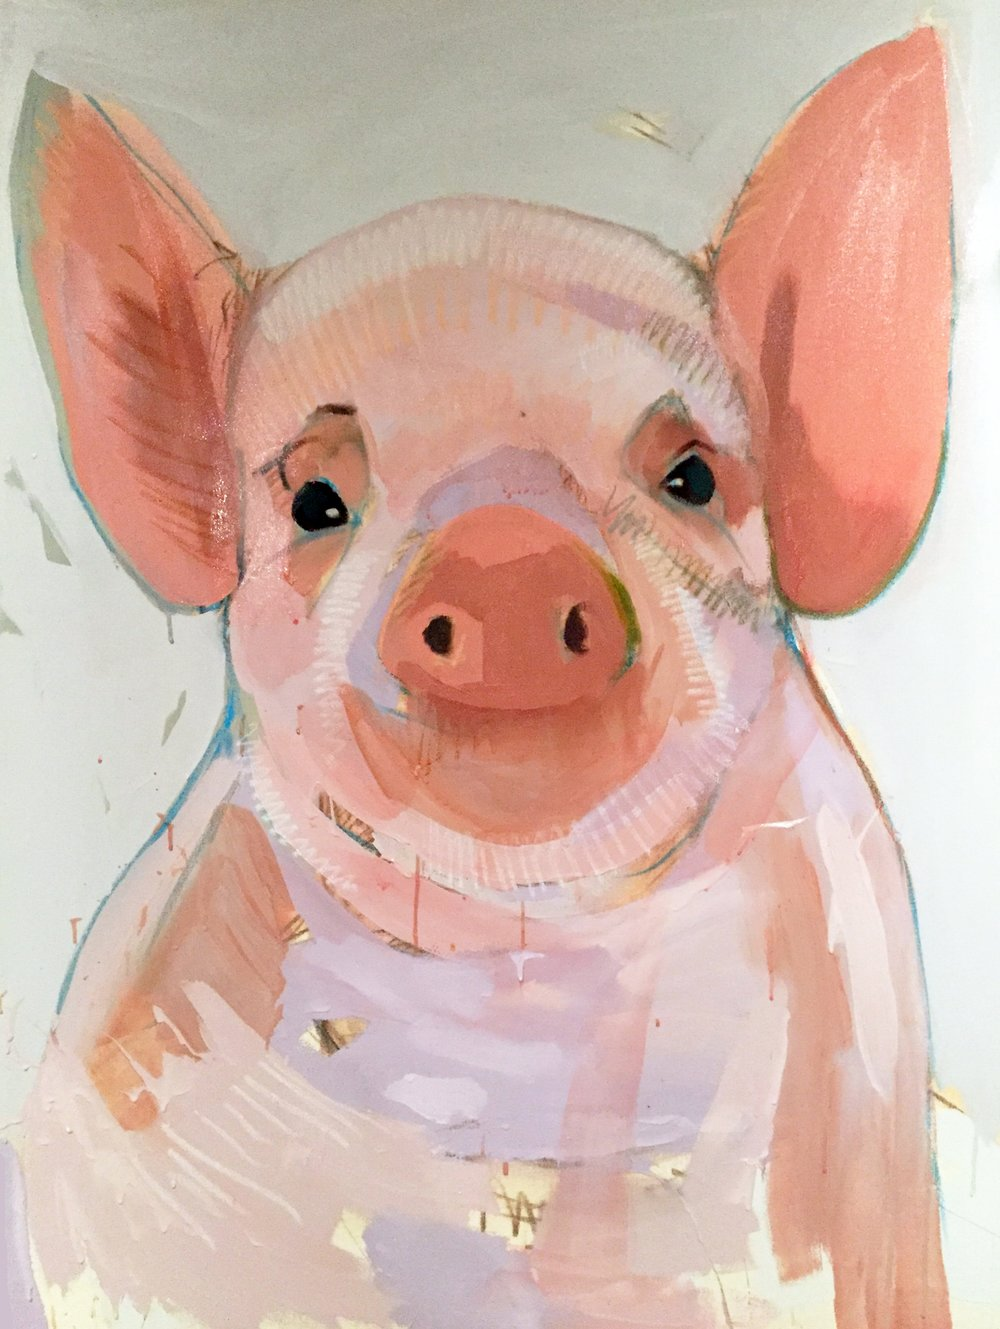 Tim Jaeger, Oink no. 2, 2015